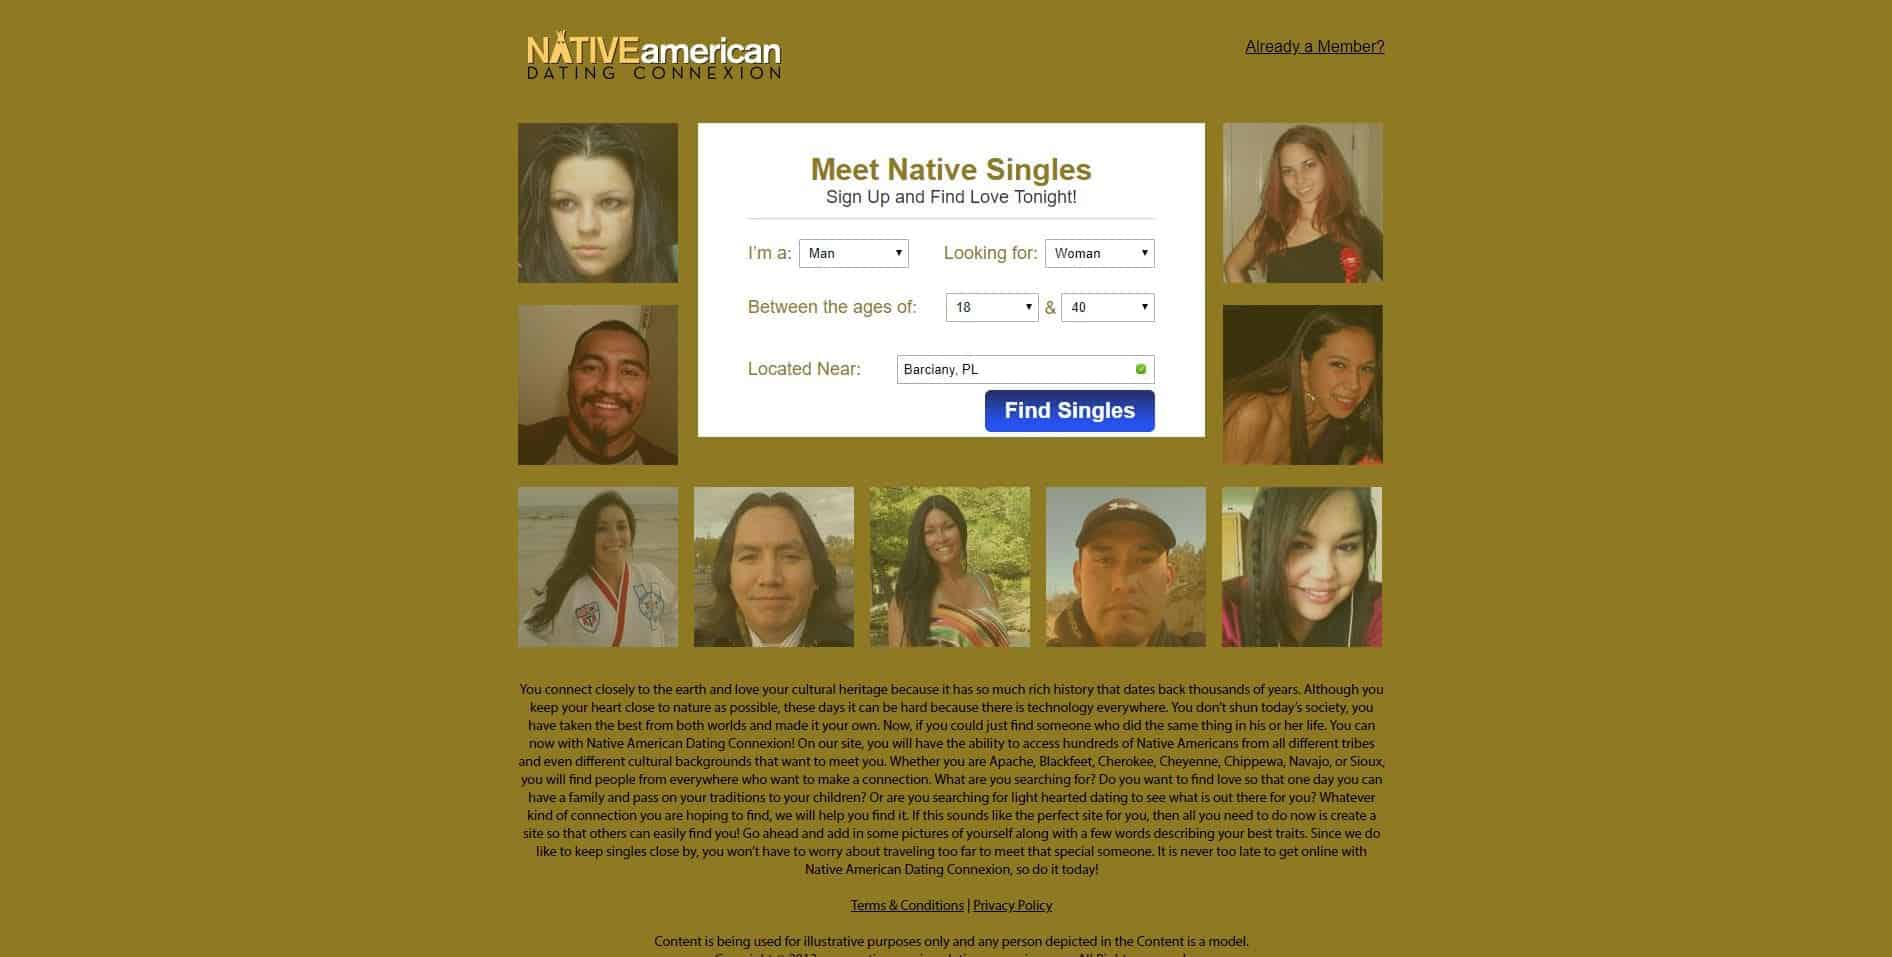 native american dating connexion-min